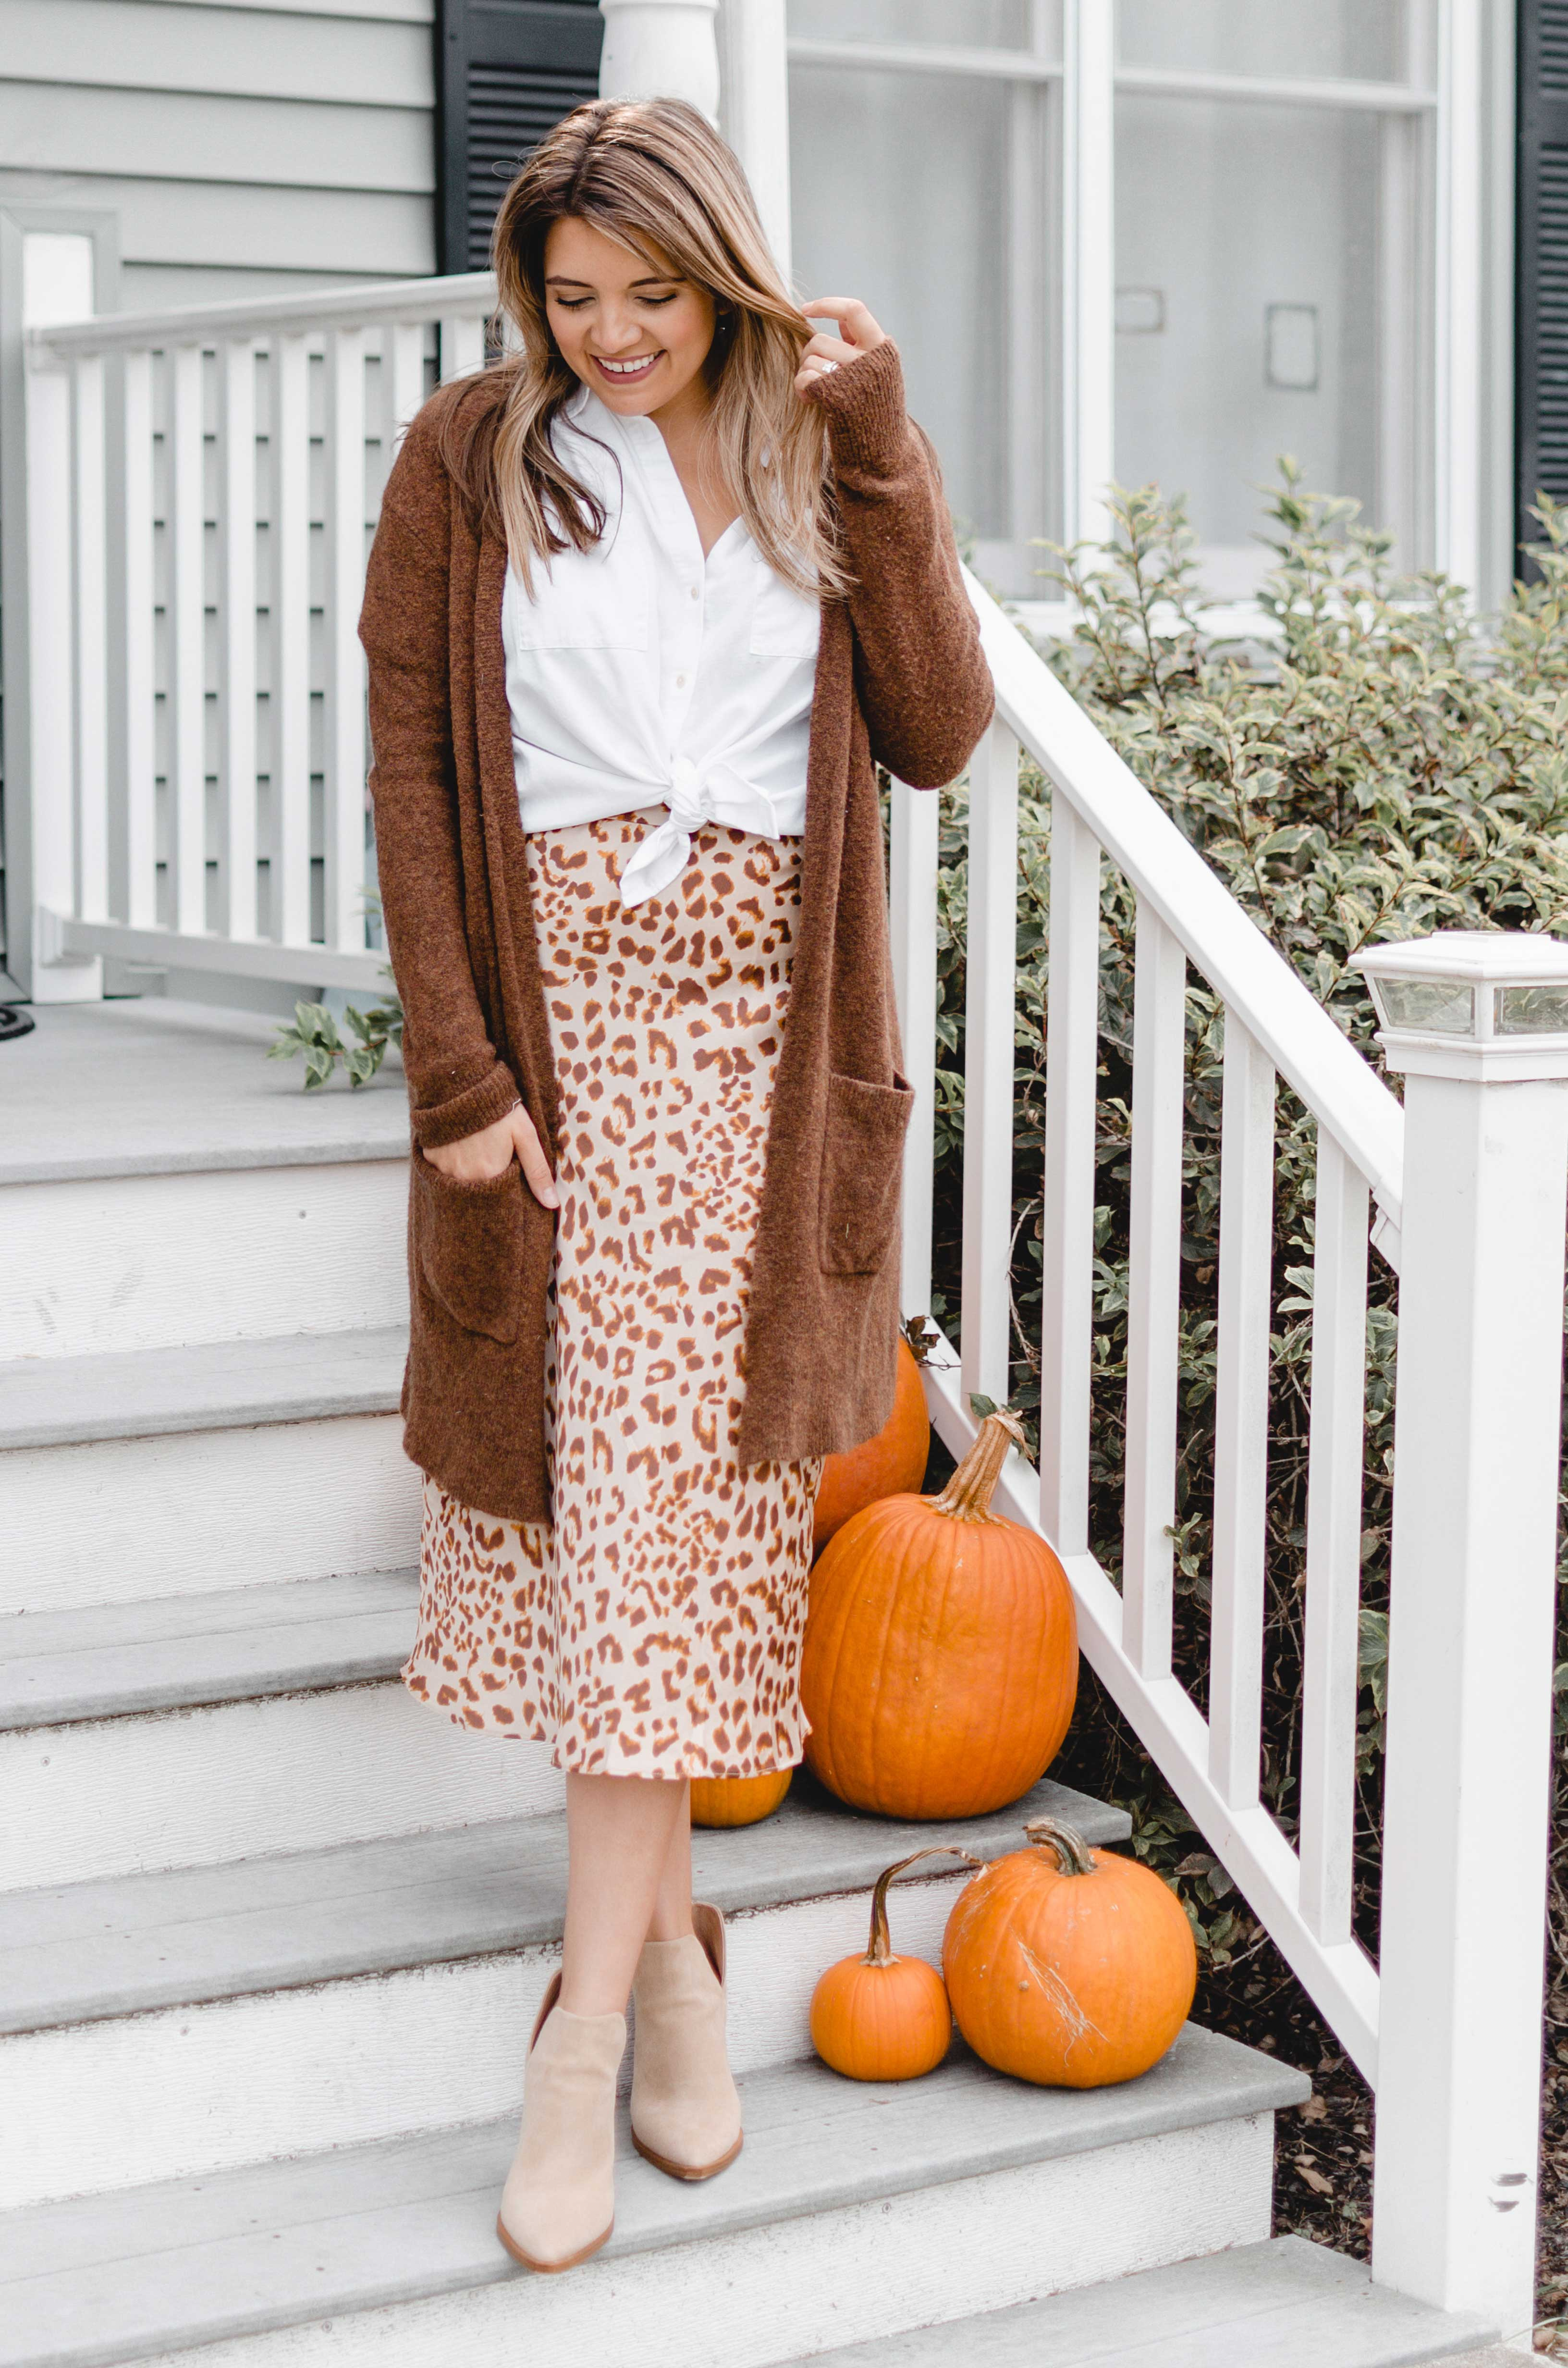 Virginia blogger, Lauren Dix, shares five ways to wear a leopard slip skirt for fall!